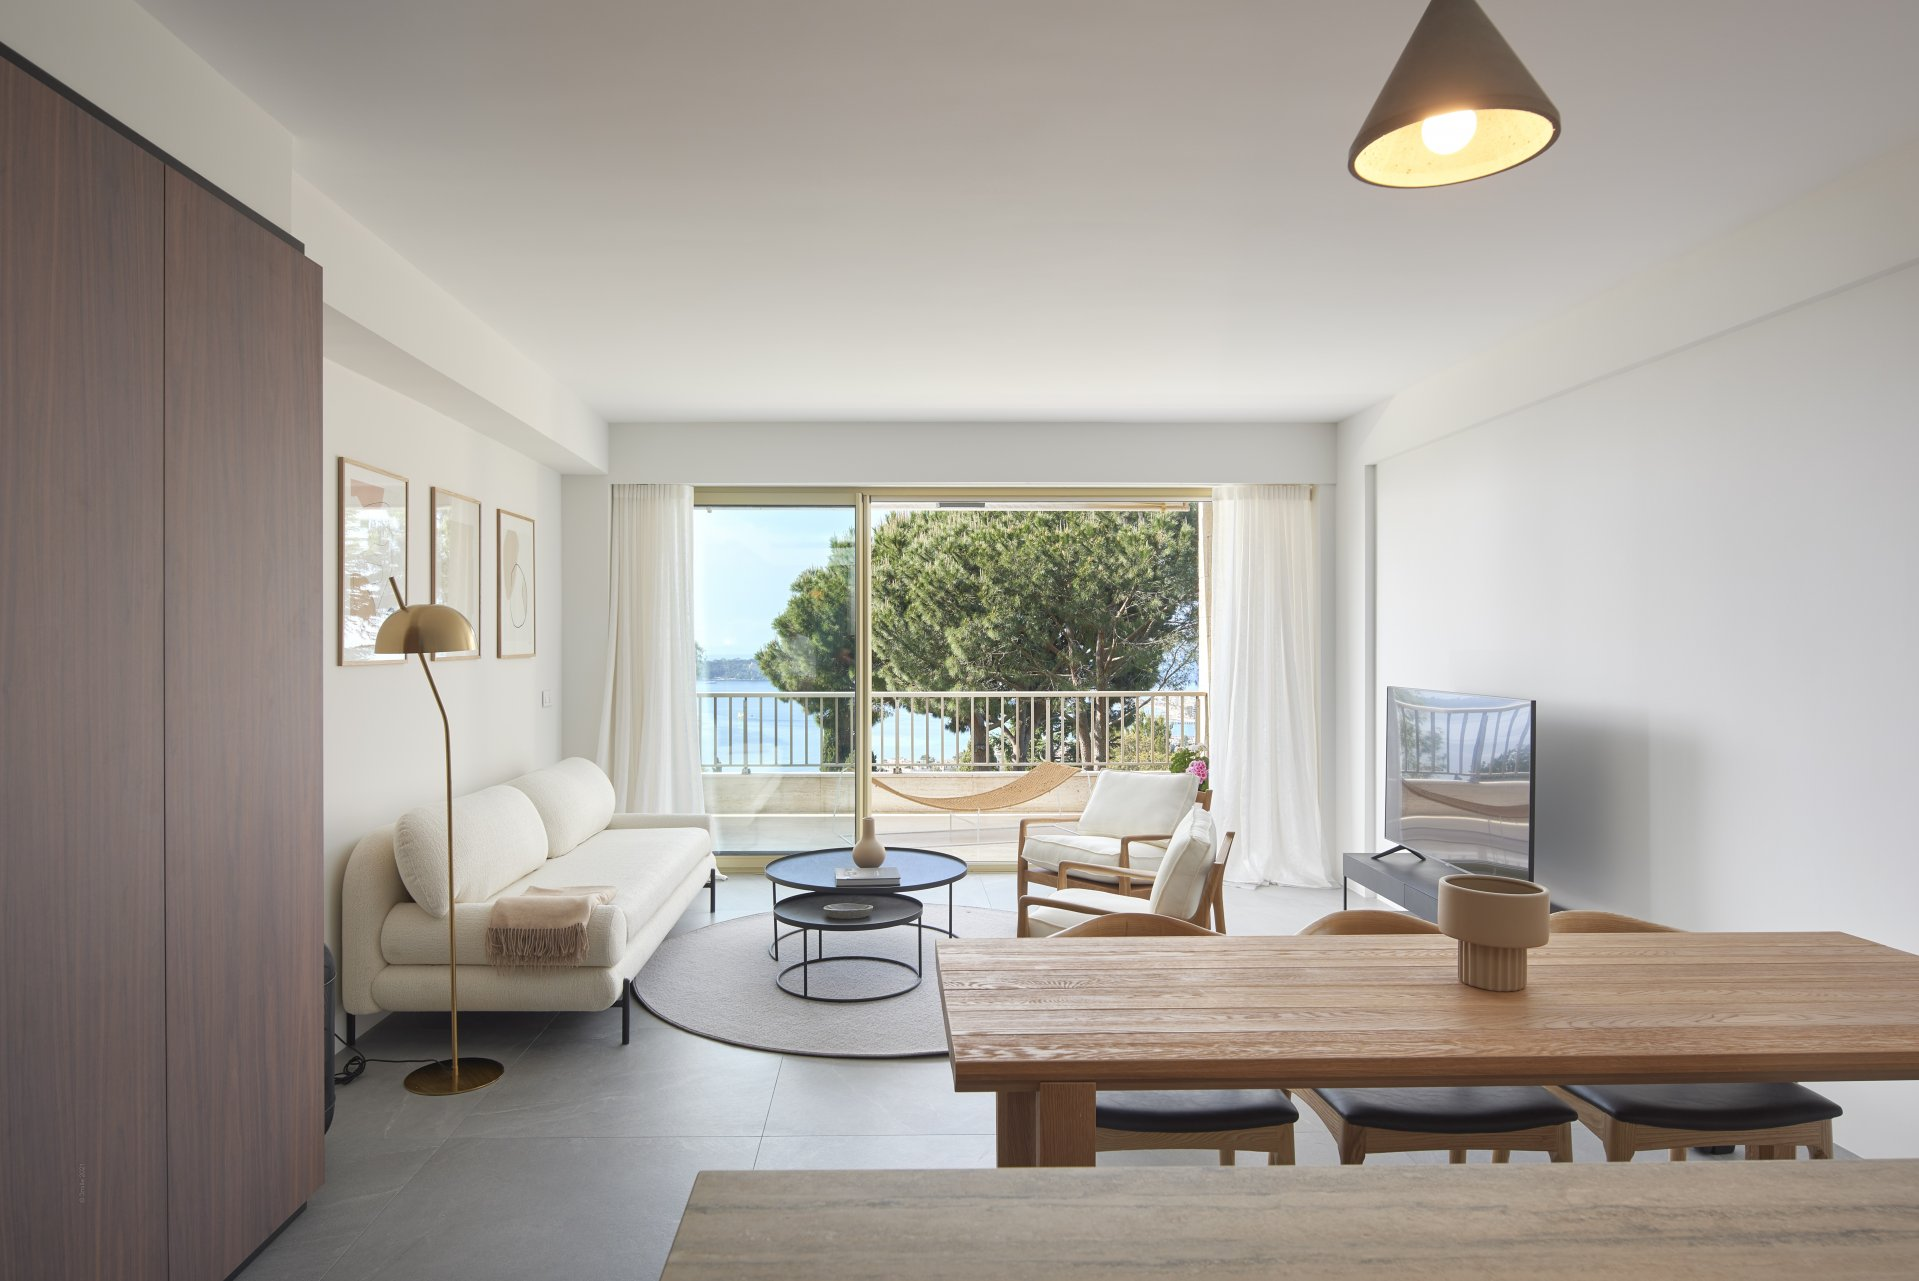 3 BEDROOM APARTMENT WITH PANORAMIC VIEW